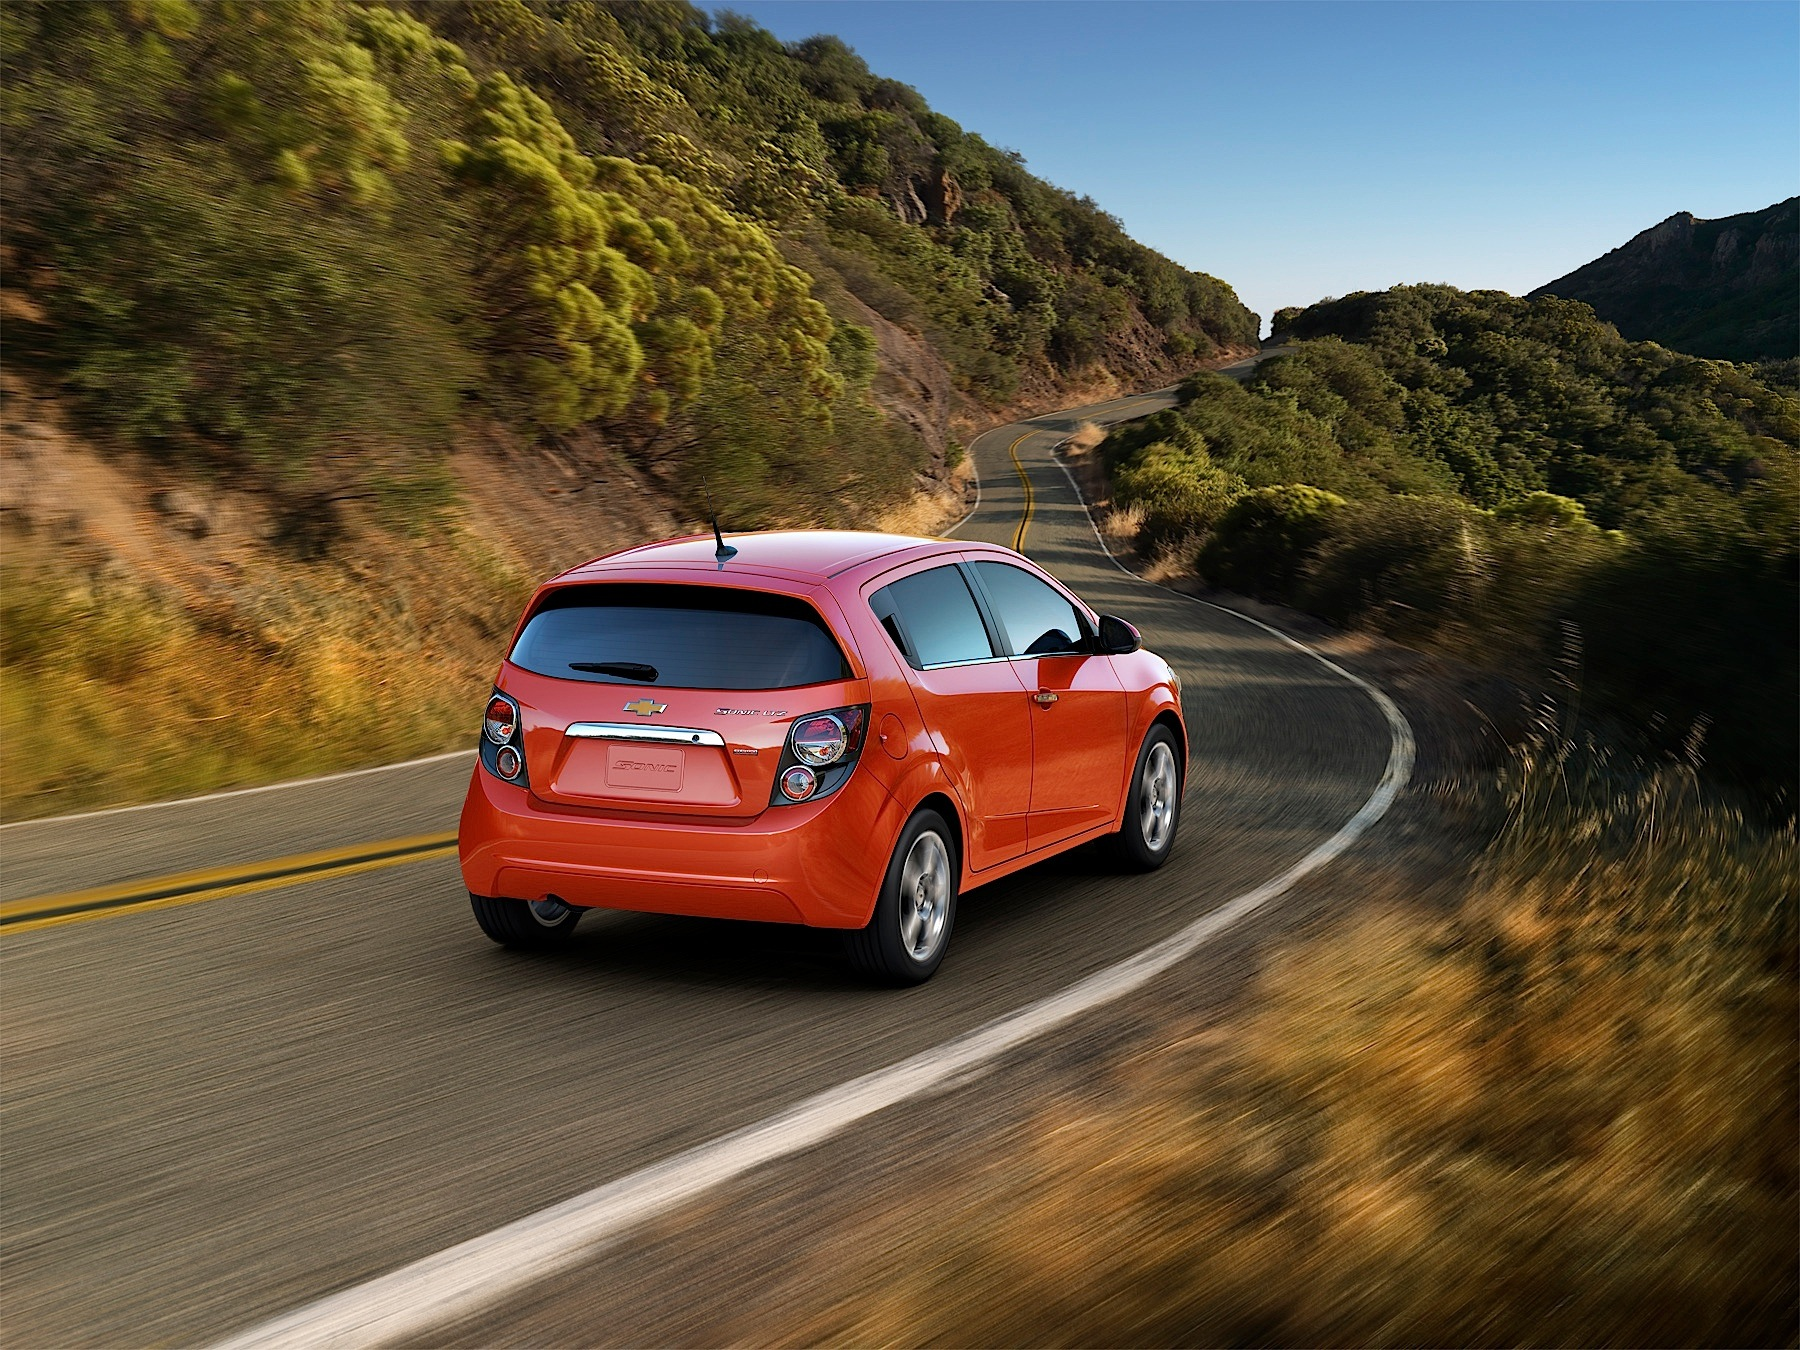 photos coupe chevrolet features reviews interior hatchback lt manual sonic price